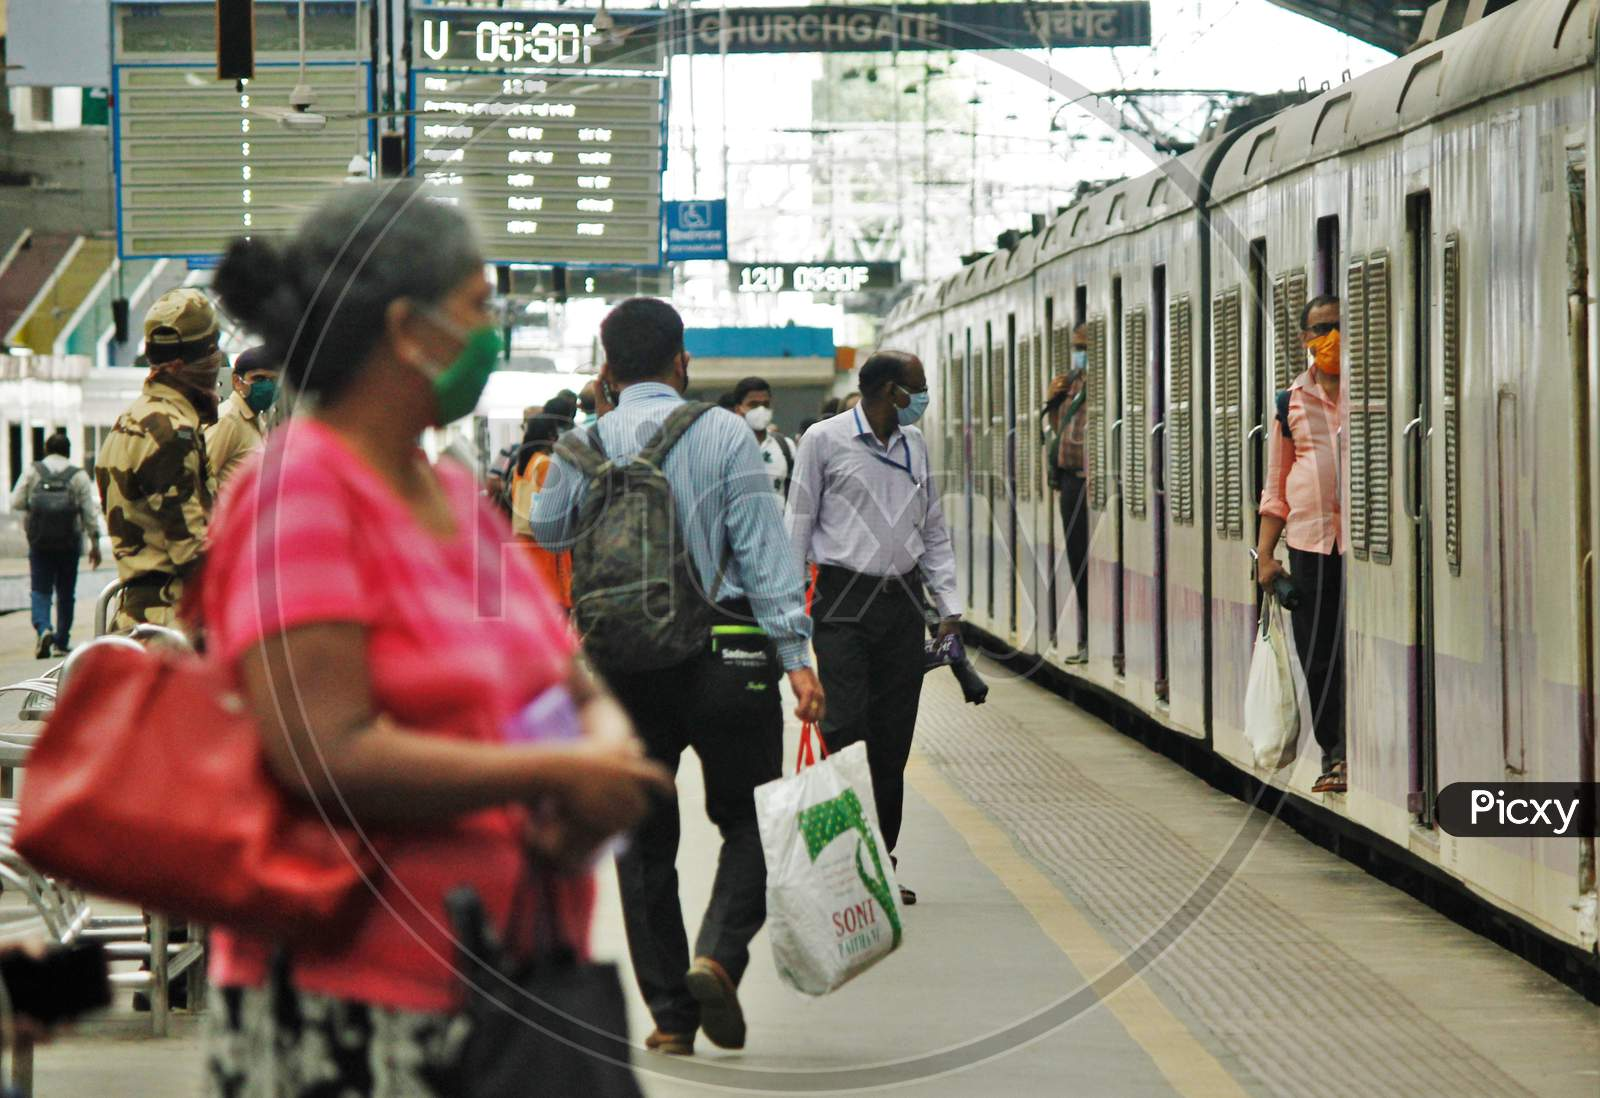 A train carrying essential service workers arrives at a platform, after the government eased a nationwide lockdown that was imposed as a preventive measure against the COVID-19 coronavirus, at Churchgate station, in Mumbai, India, on June 16, 2020.